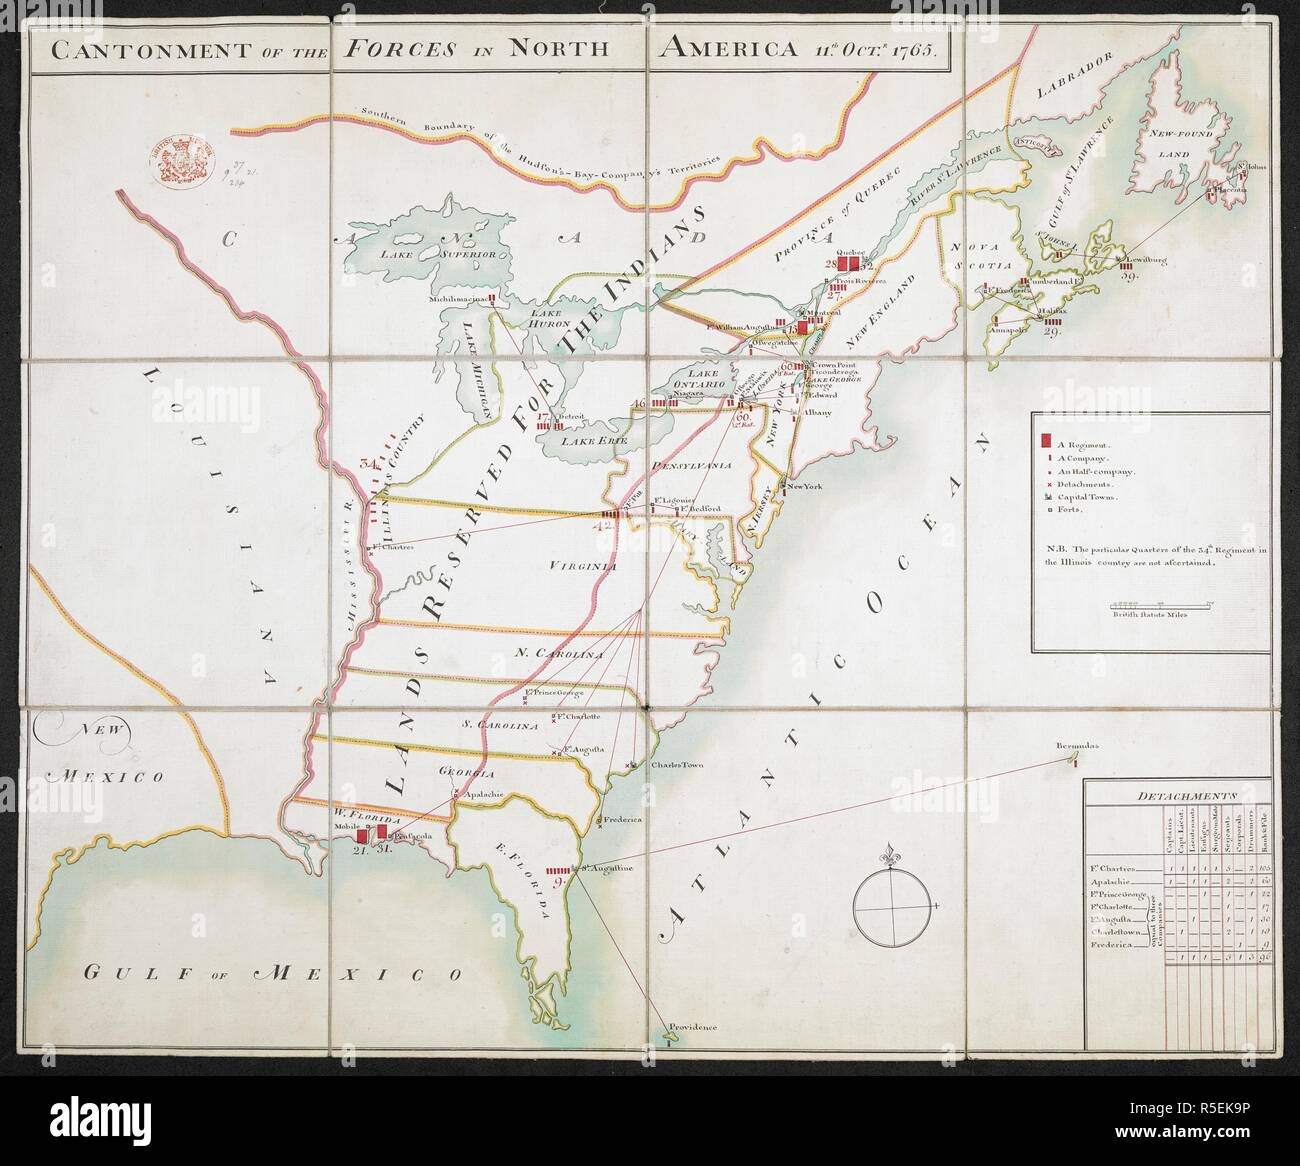 Map of the Cantonment of the Forces in North America, 11th ...